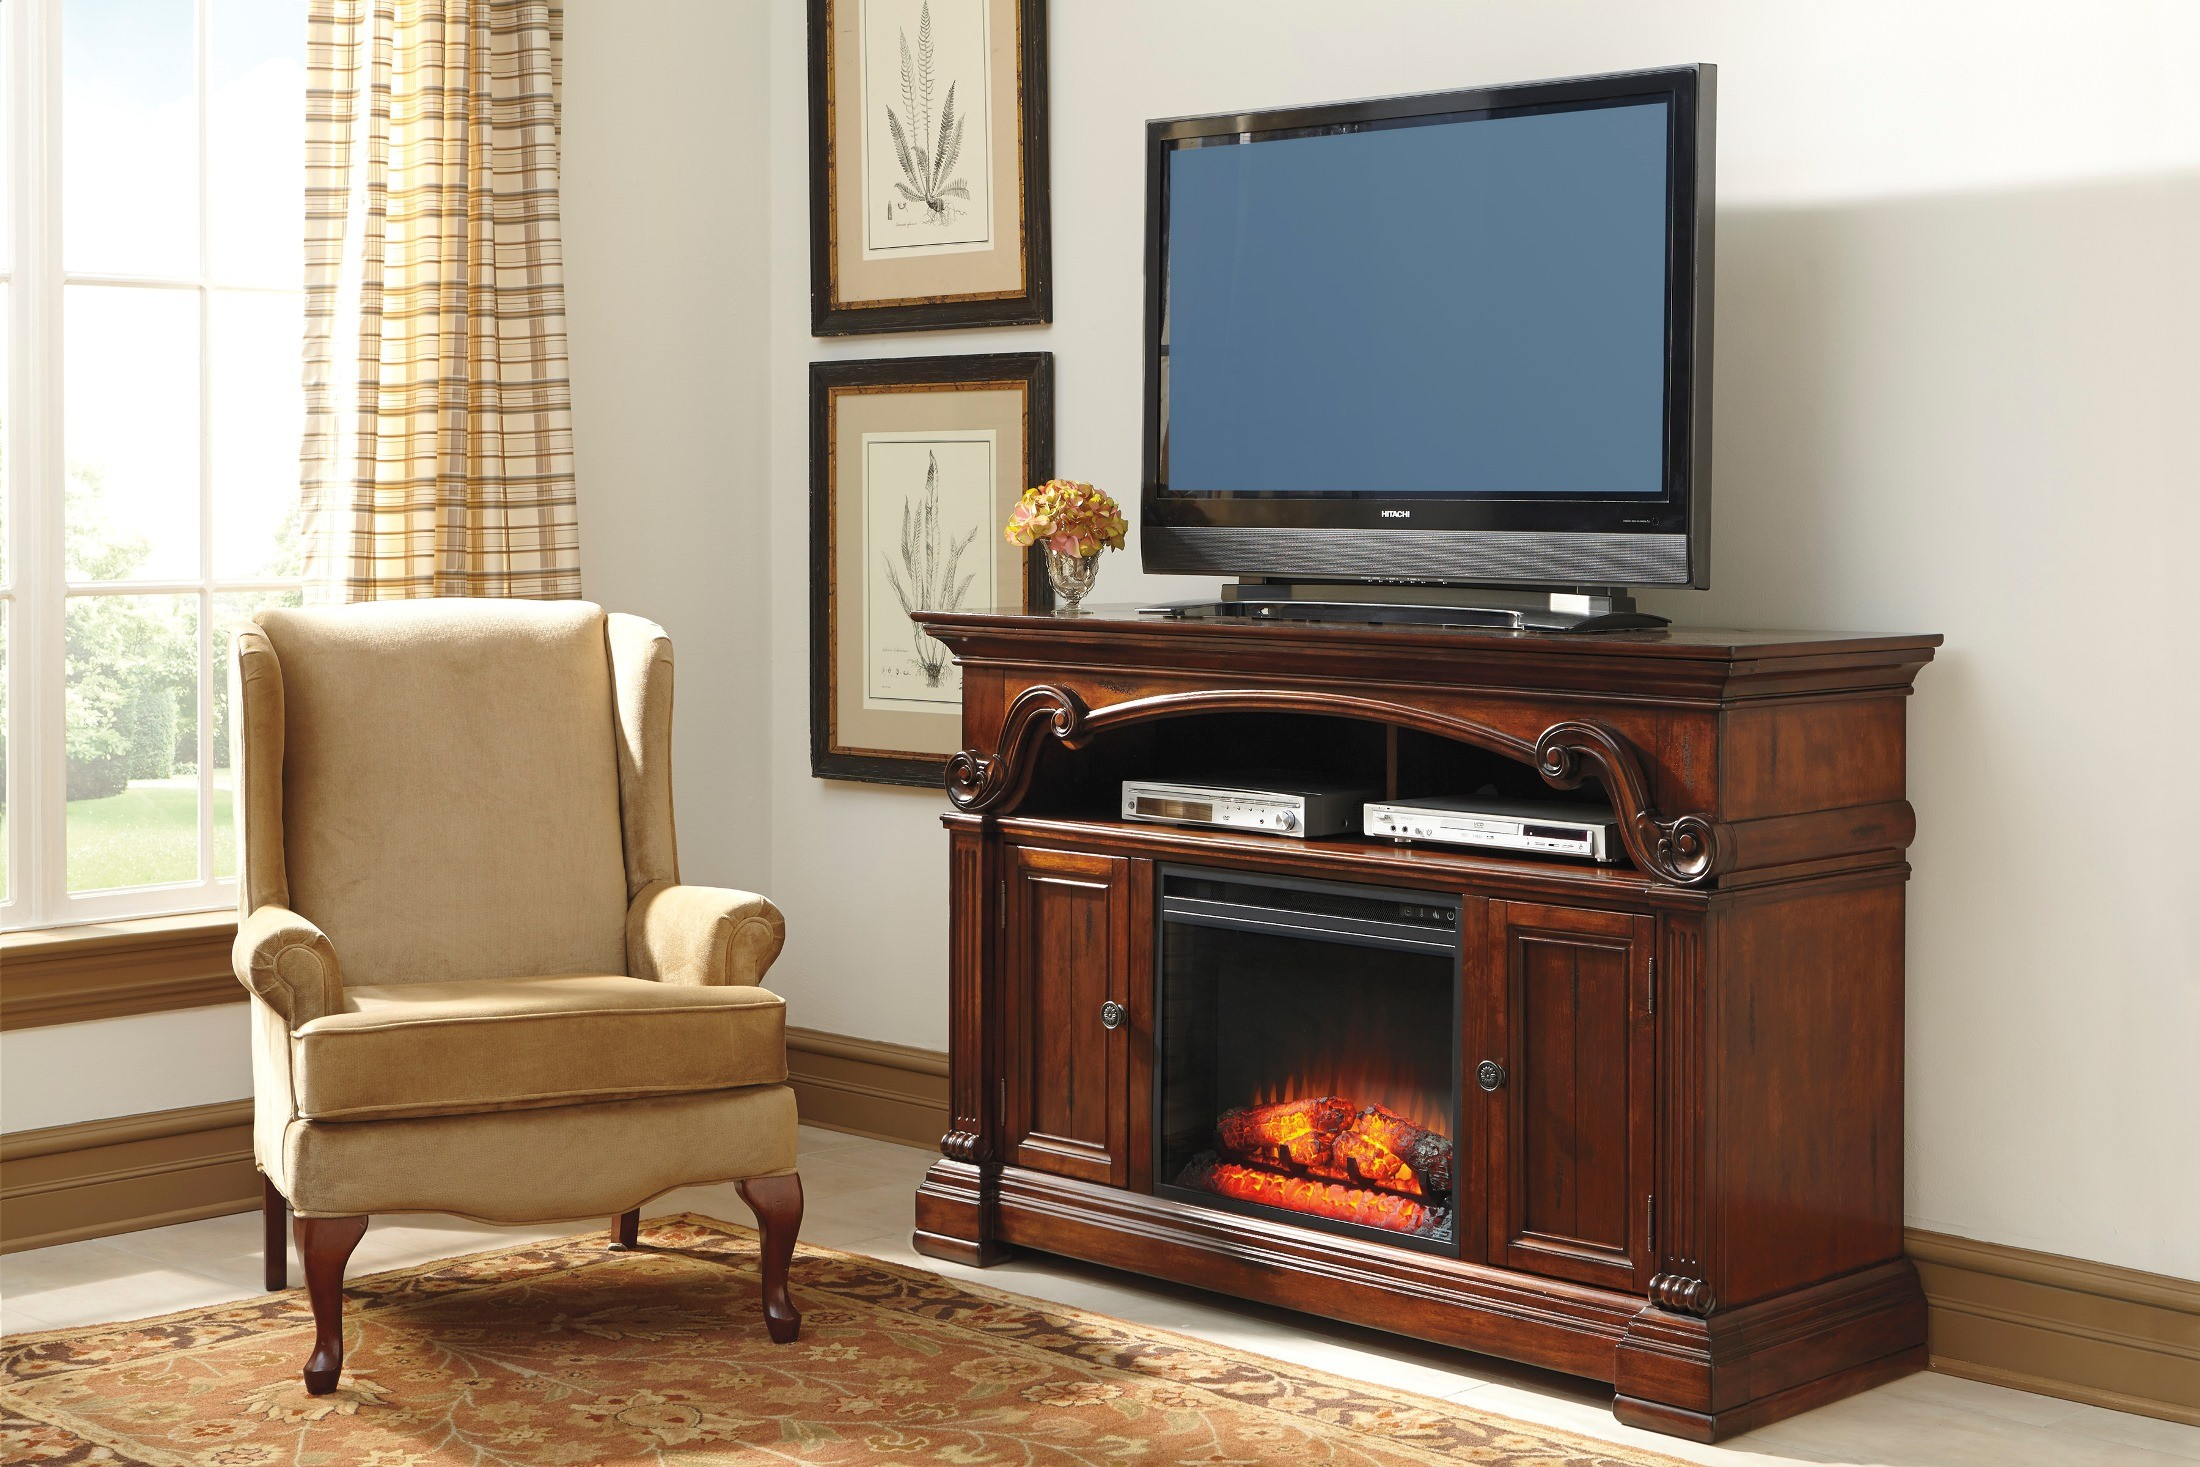 Alymere Lg Tv Stand With Fireplace Option W669 68 Ashley